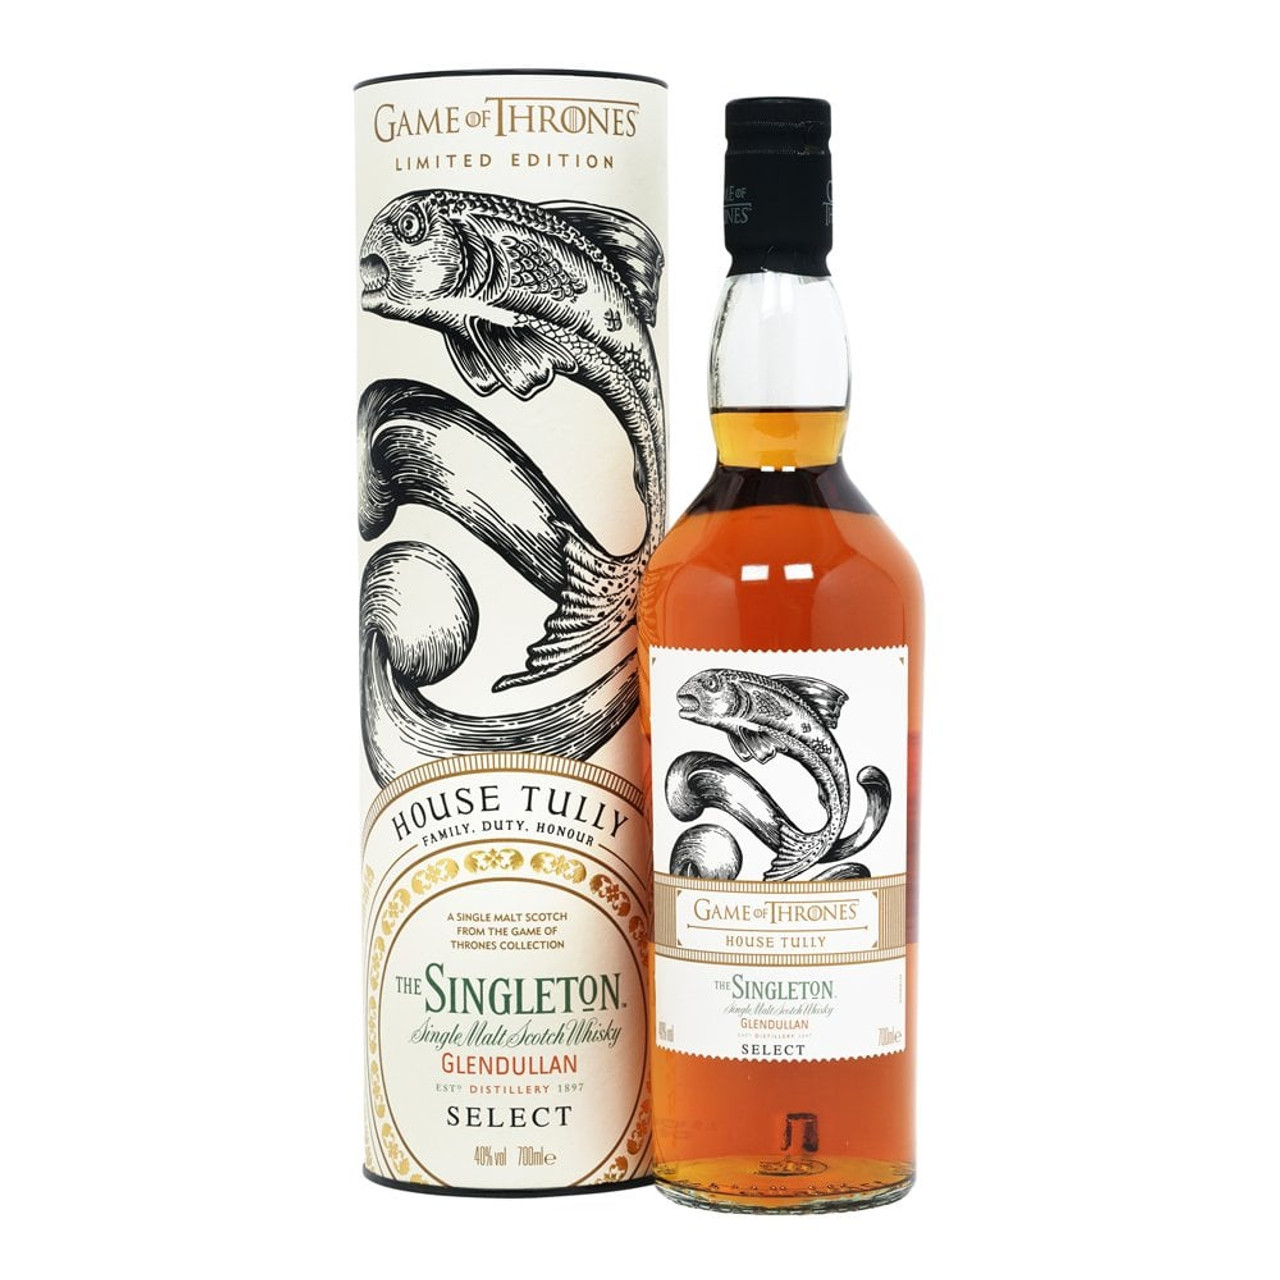 The Singleton House Tully is one of eight single malts Scotch whiskies made to commemorate the eighth and final season of Game of Thrones. This no-age statement single malt bears the sigil of House Tully - a jumping trout. House Tully located at Riverrun, rules as the lord of the River lands. The power of water flows through both House Tully and The Singleton Glendullan Select as it is made on the banks of the River Fiddich in the wooded hills of Dufftown. Here they harnessed the water that flowed through the land utilizing a water wheel to power the entire distillery.